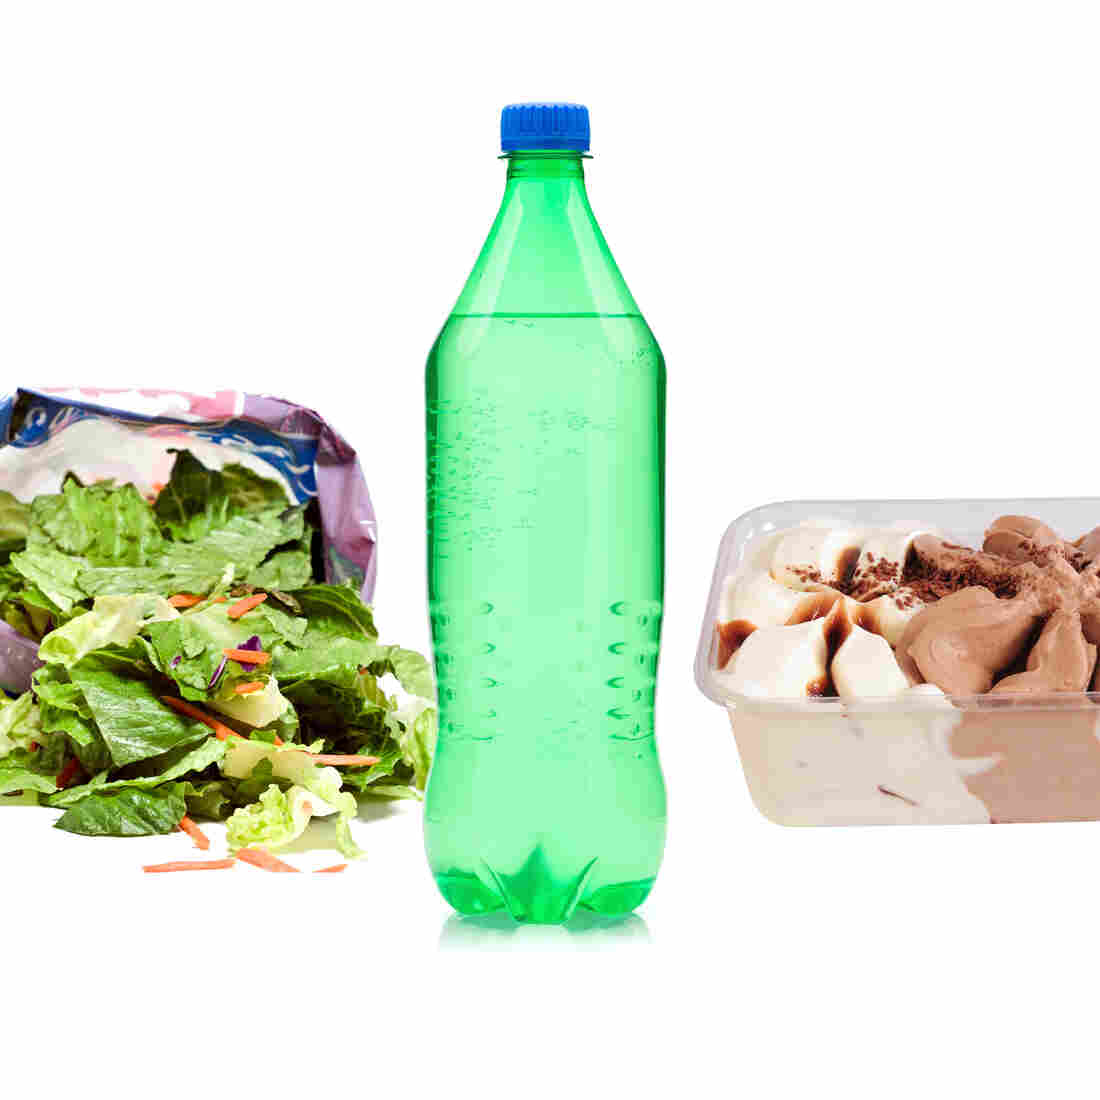 Food companies spend a lot of time and resources coming up with the perfect plastic packaging to keep their products fresh.